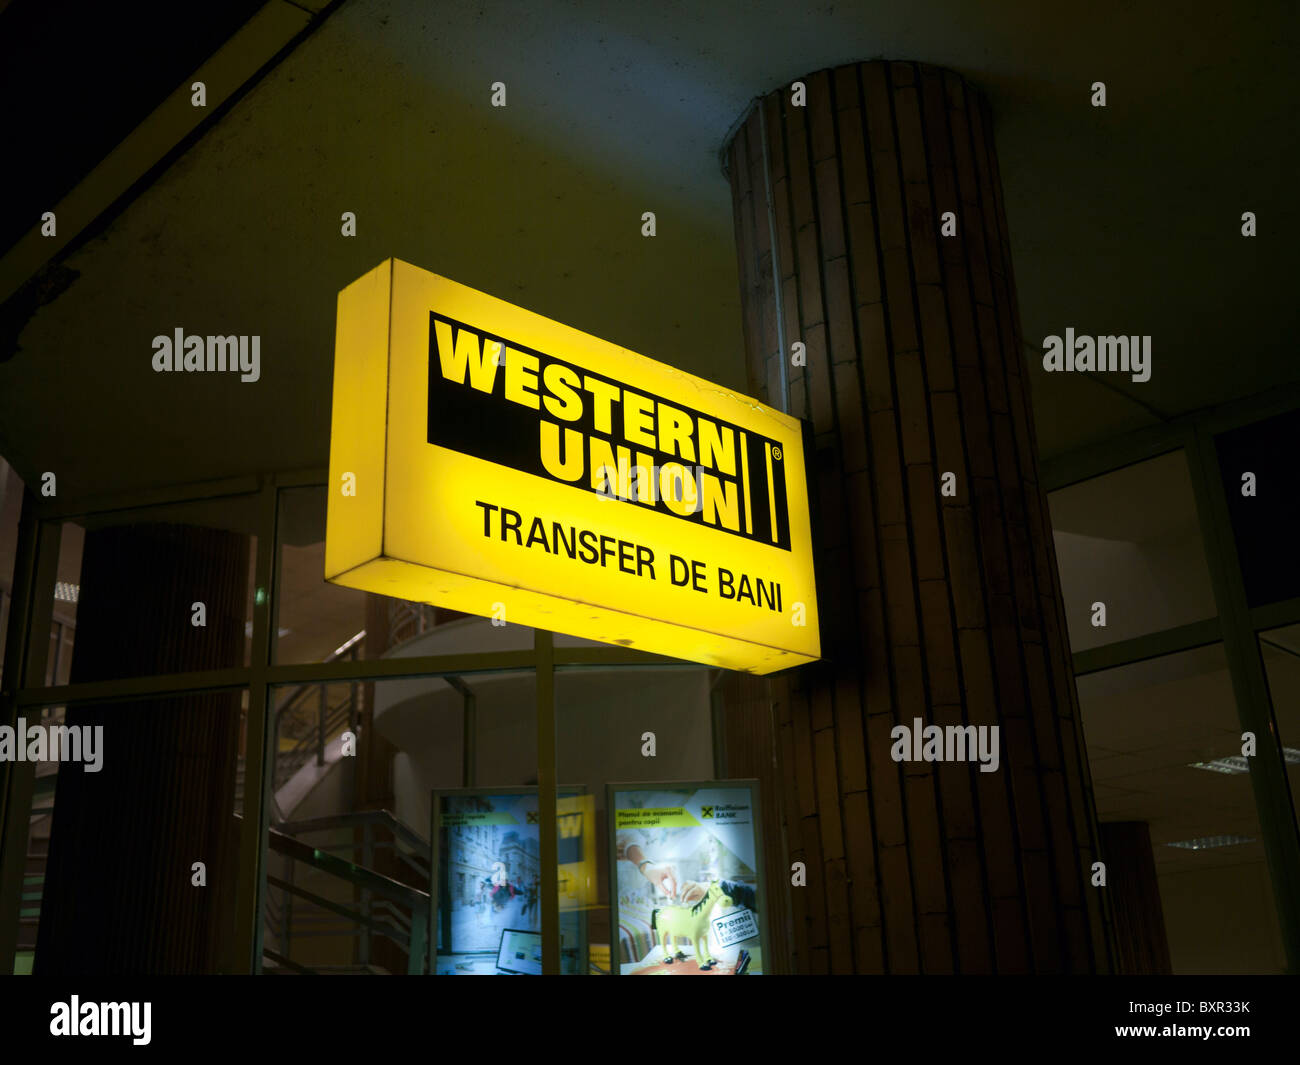 Western Union sign outside a bank in Romania - Stock Image